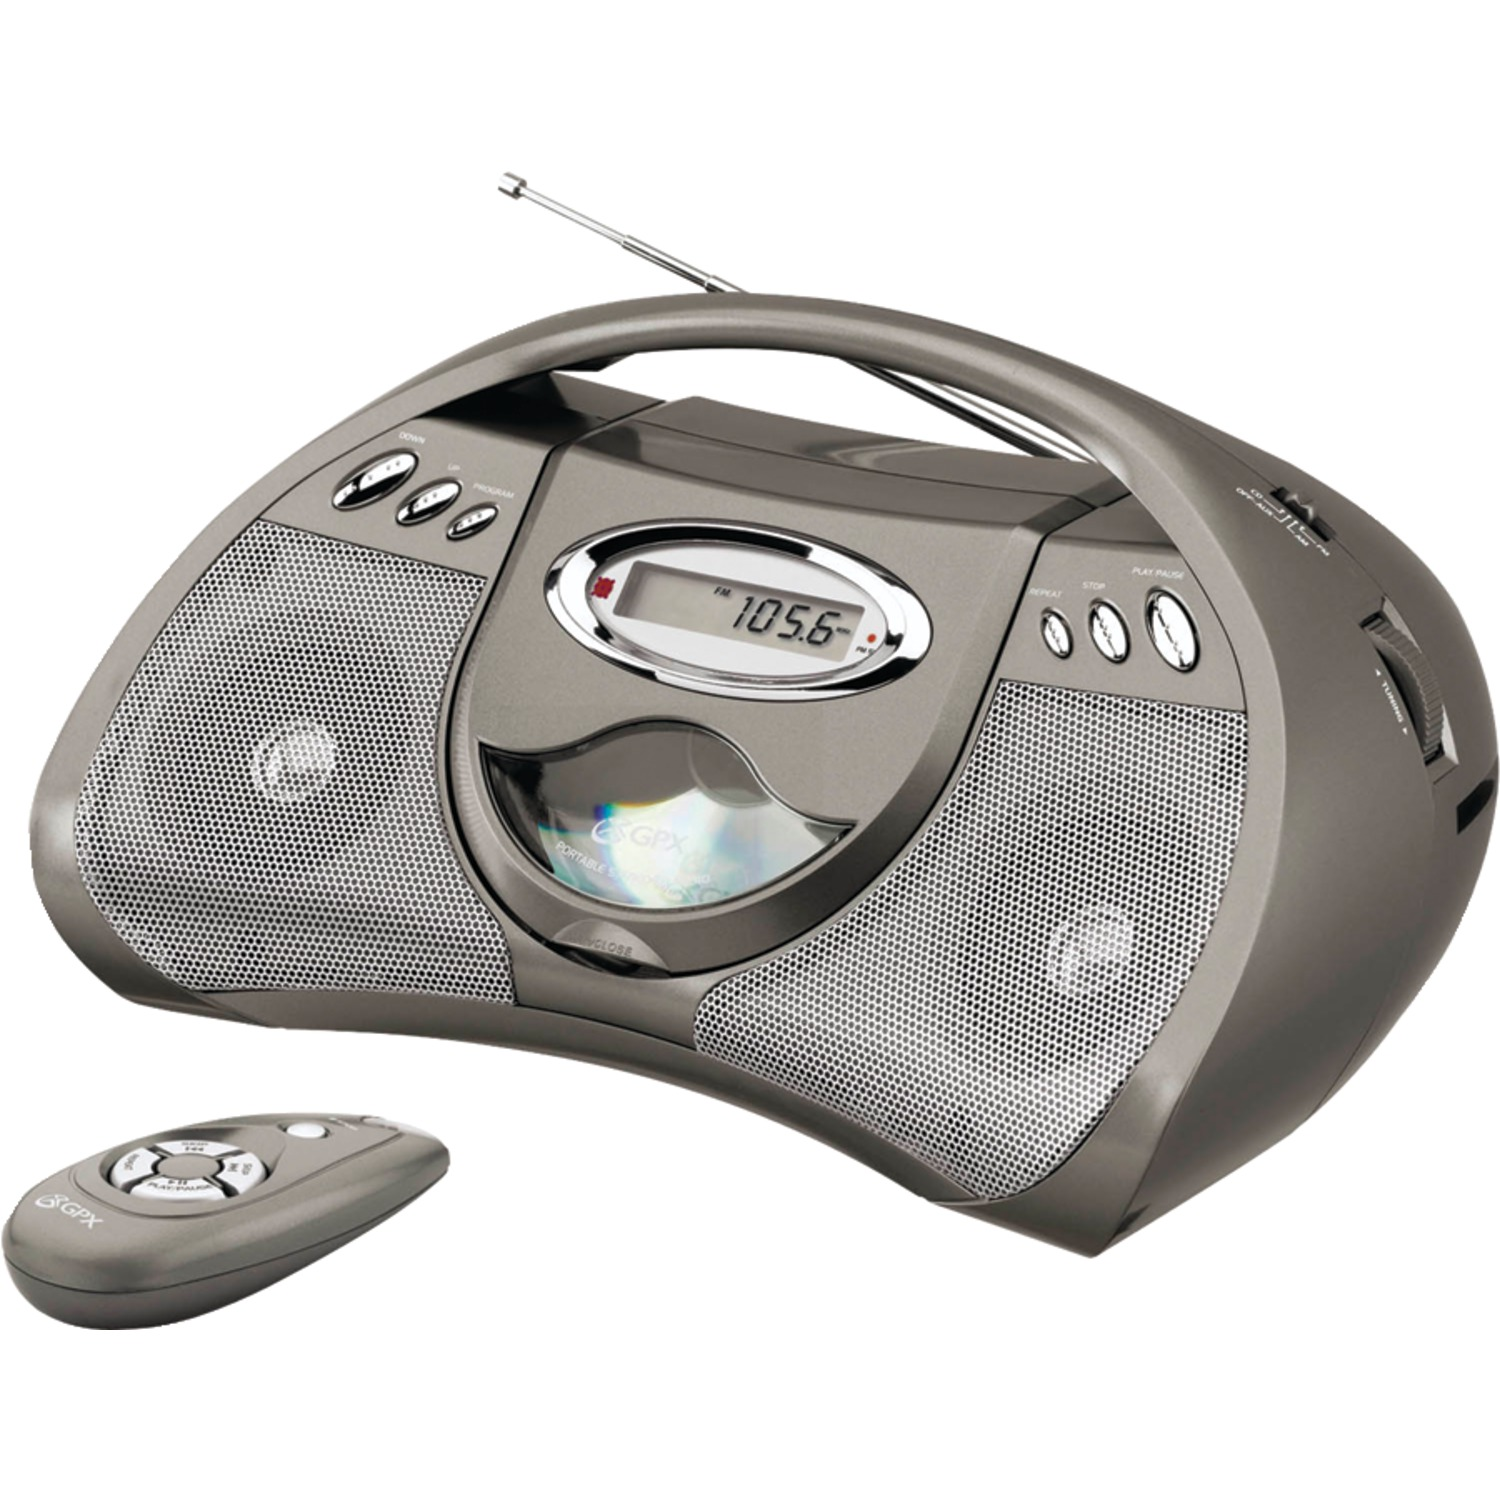 Gpx bcd2306dp portable cd player with am fm radio - Mobile porta cd ...